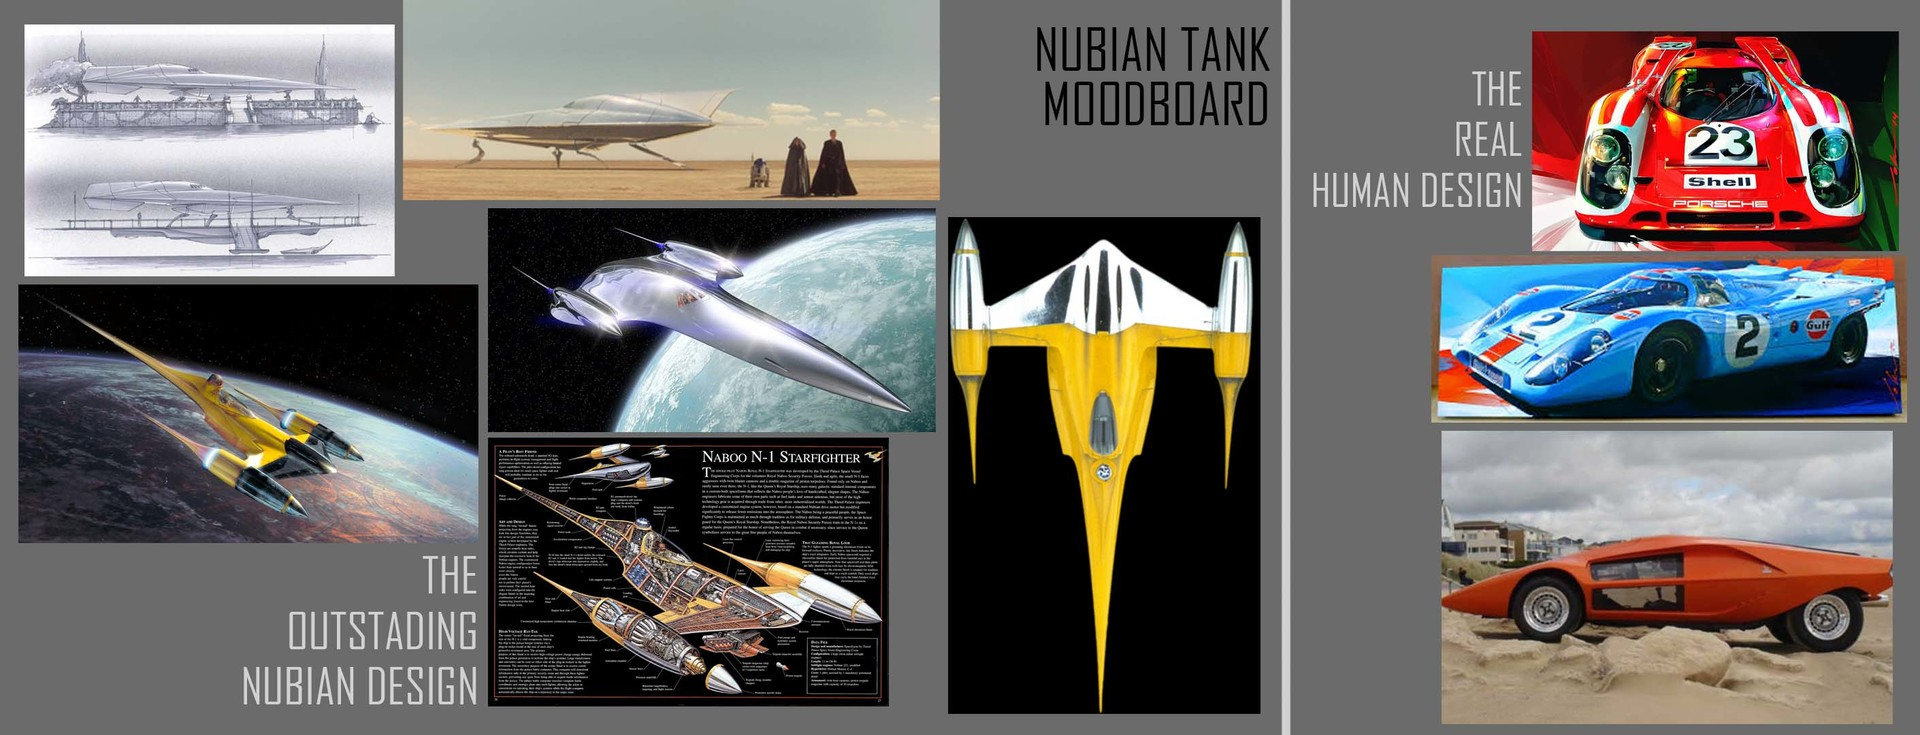 MoodBoard followed, searching for that balance of real and sci-fi, I love the N-1, and it's beautiful spitfire belly. Made by the talented guys at the Nubian Design Collective, or in real life Doug Chiang and friends.